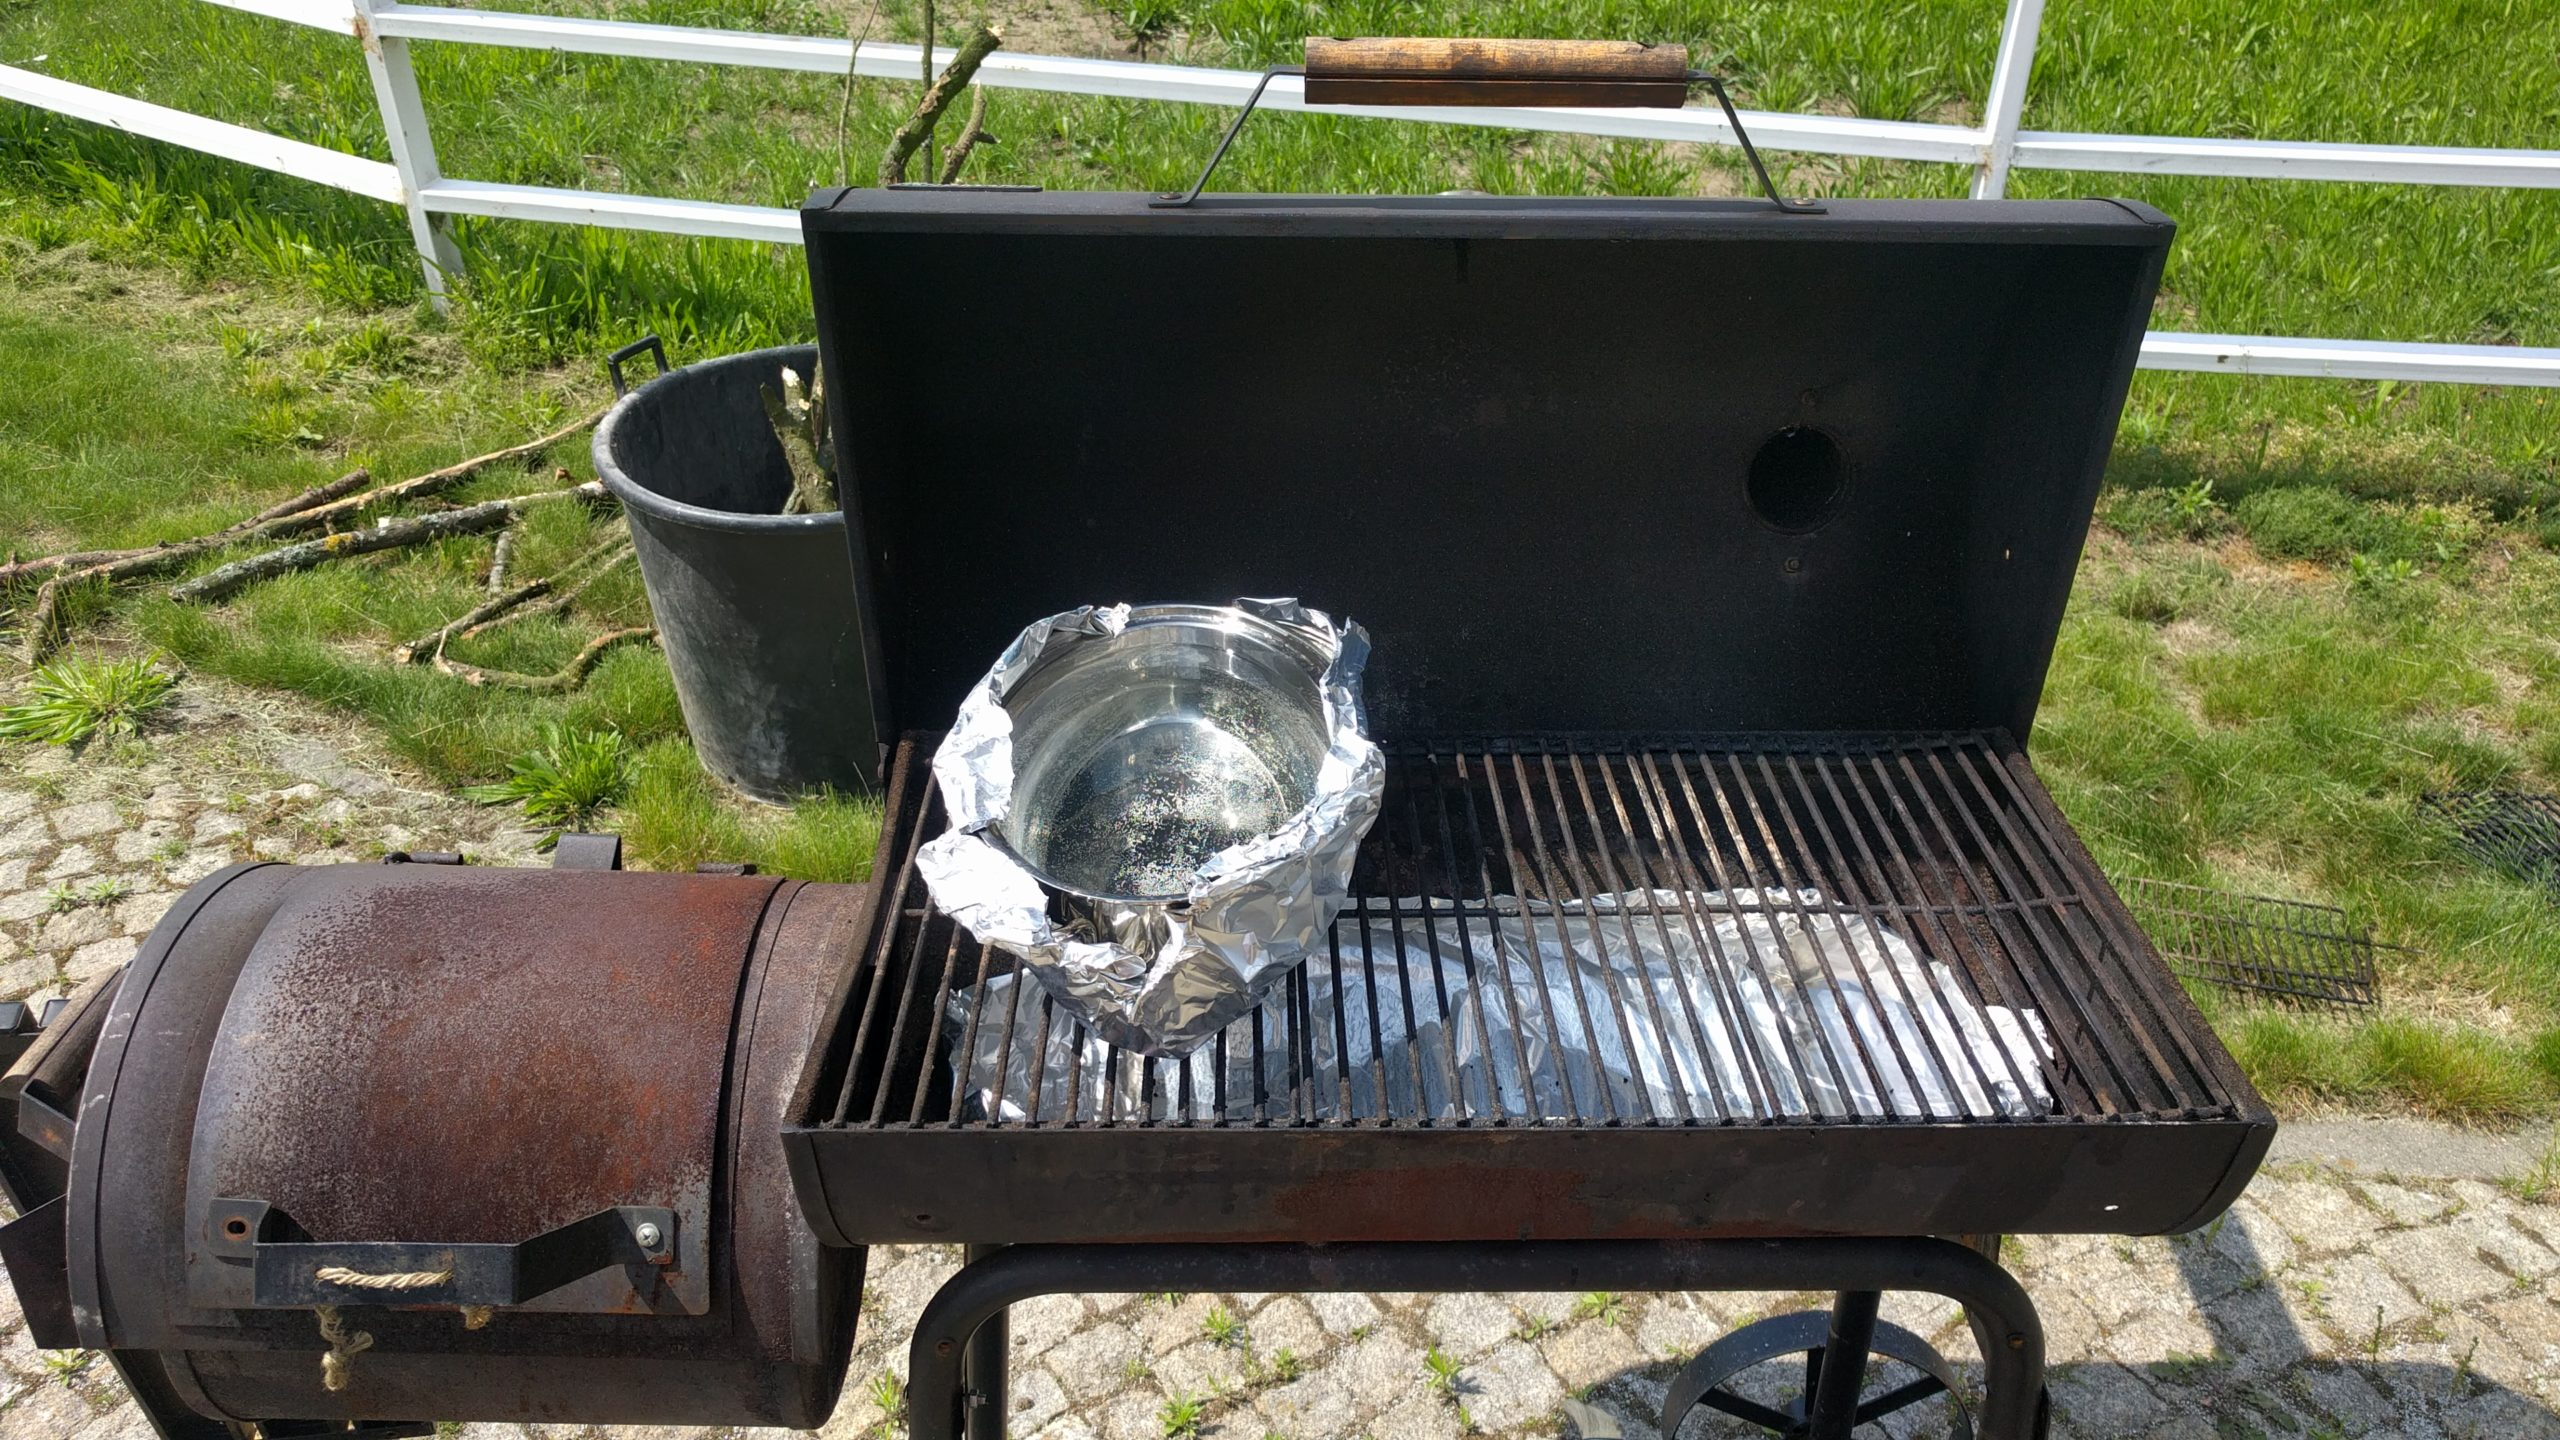 Drip pan and water pan ready in position to start smoking.